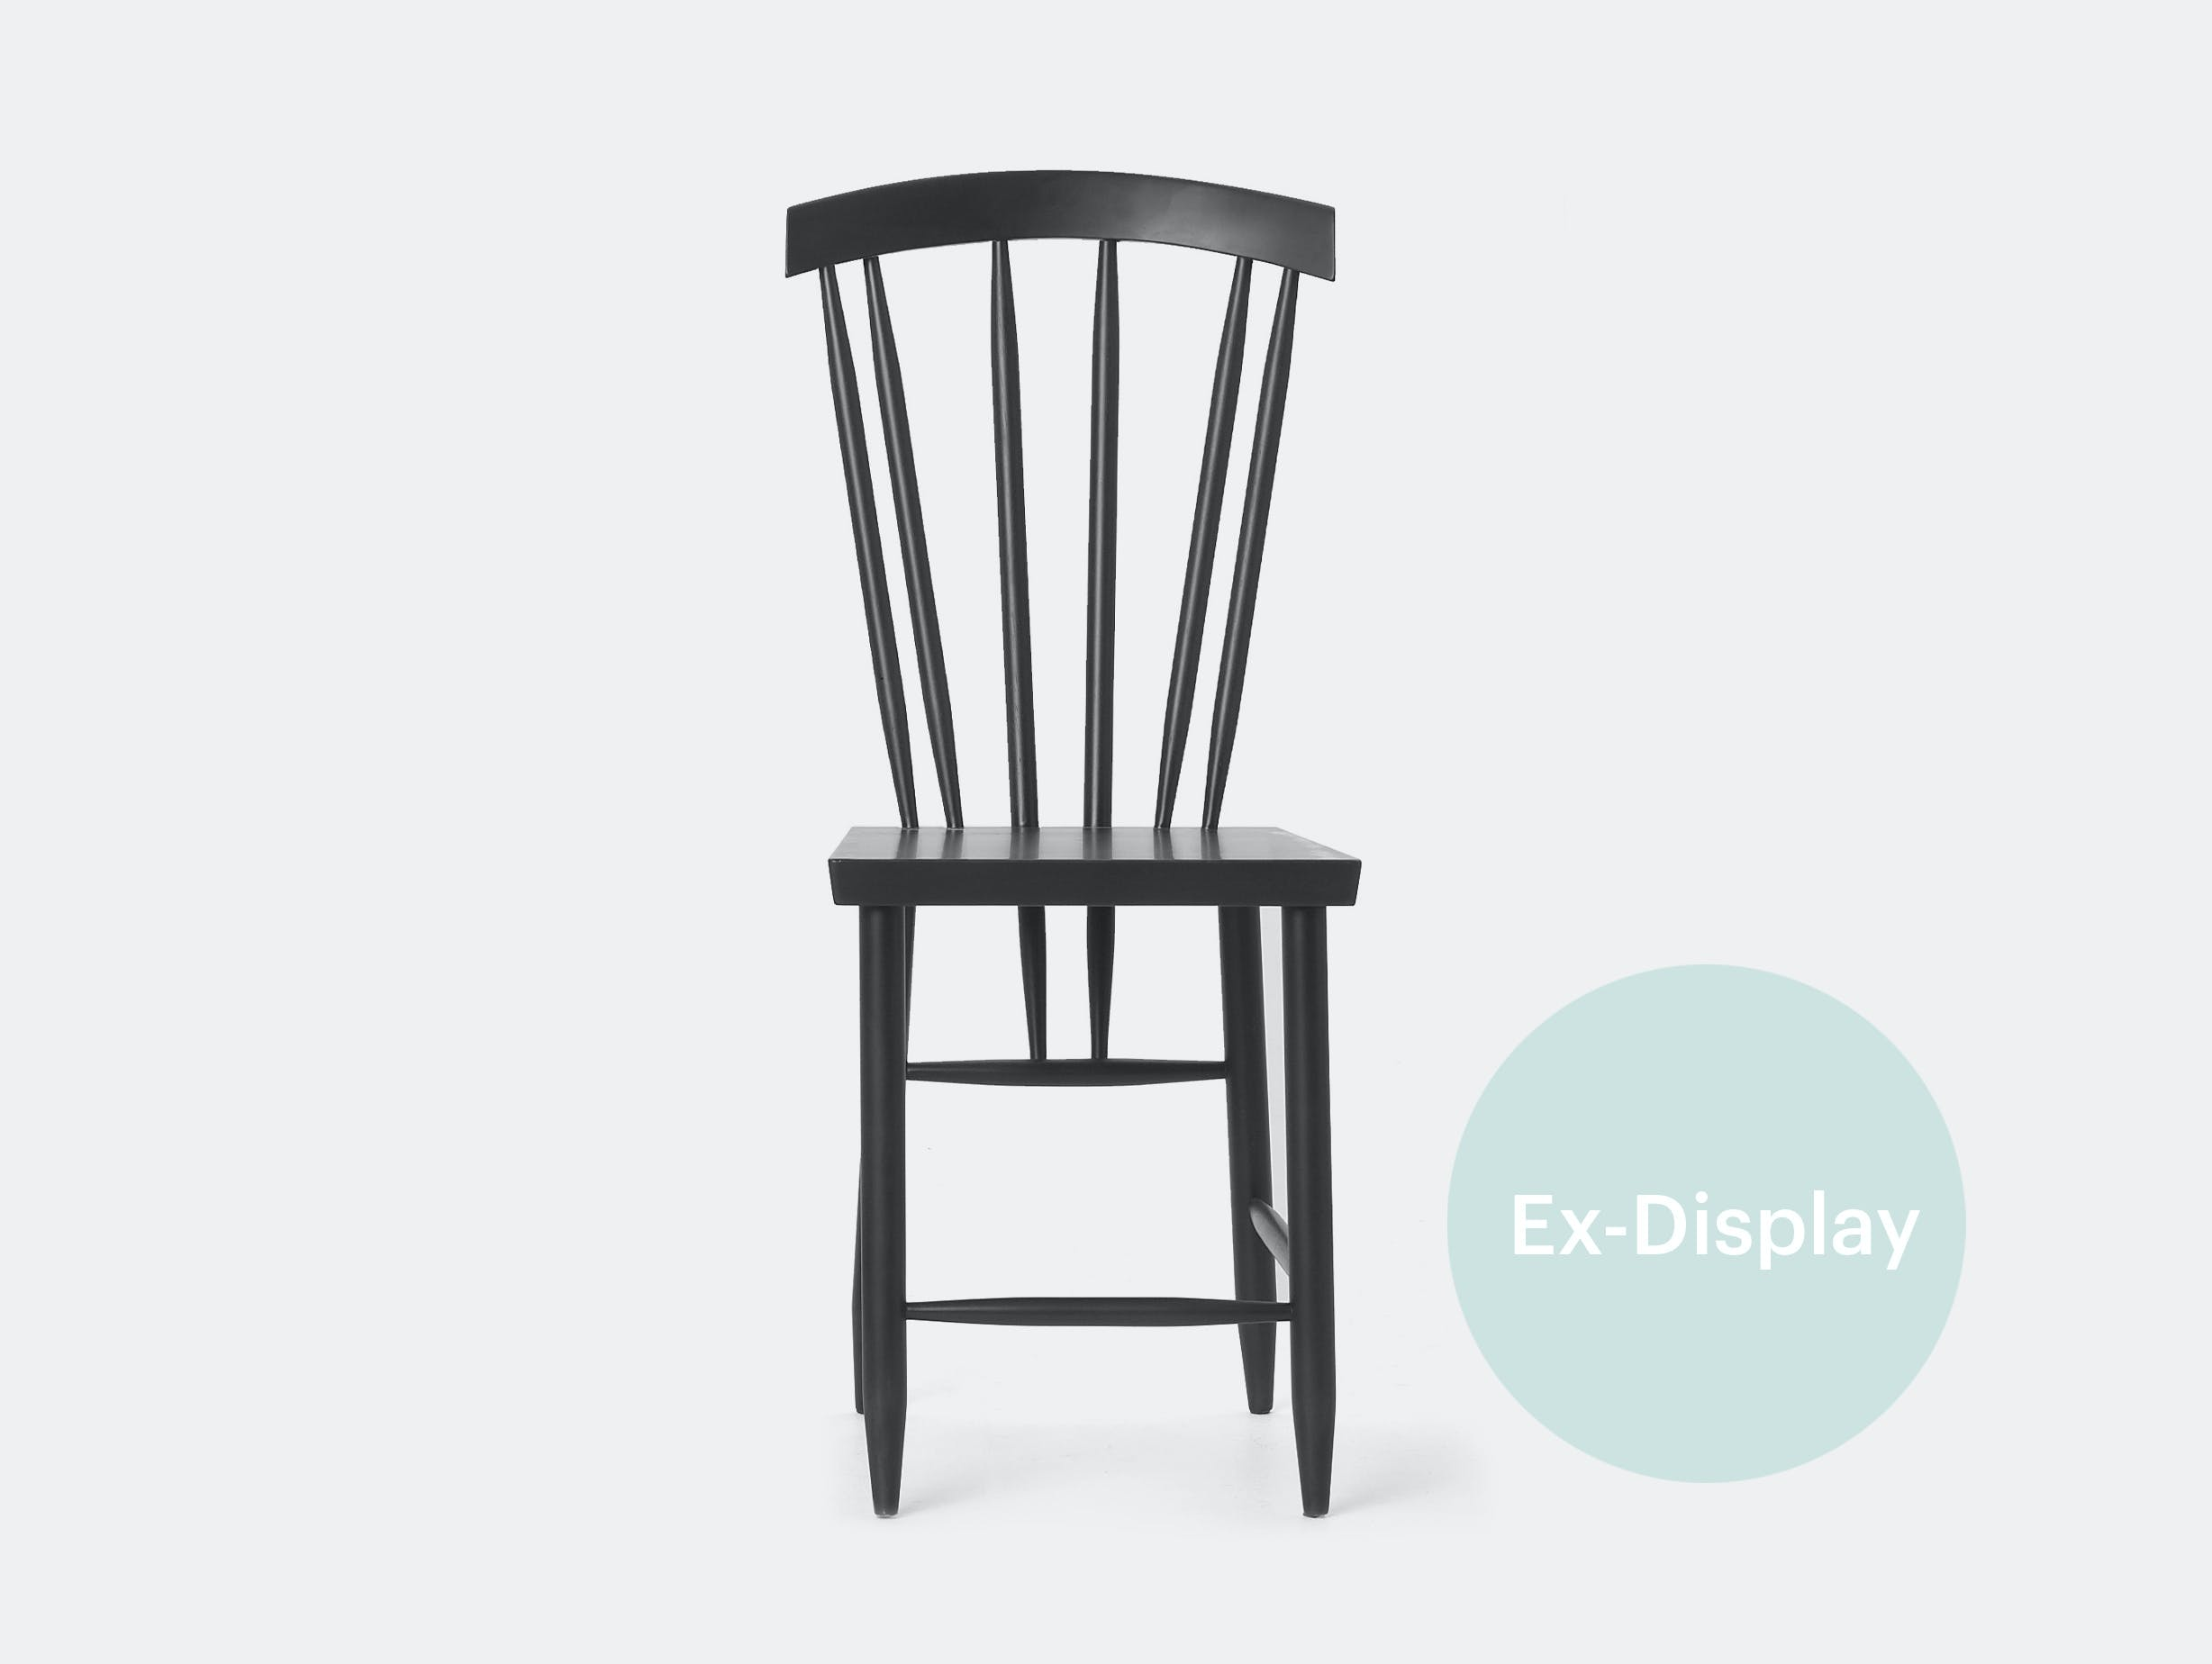 Xdp design house stockholm family chair 3